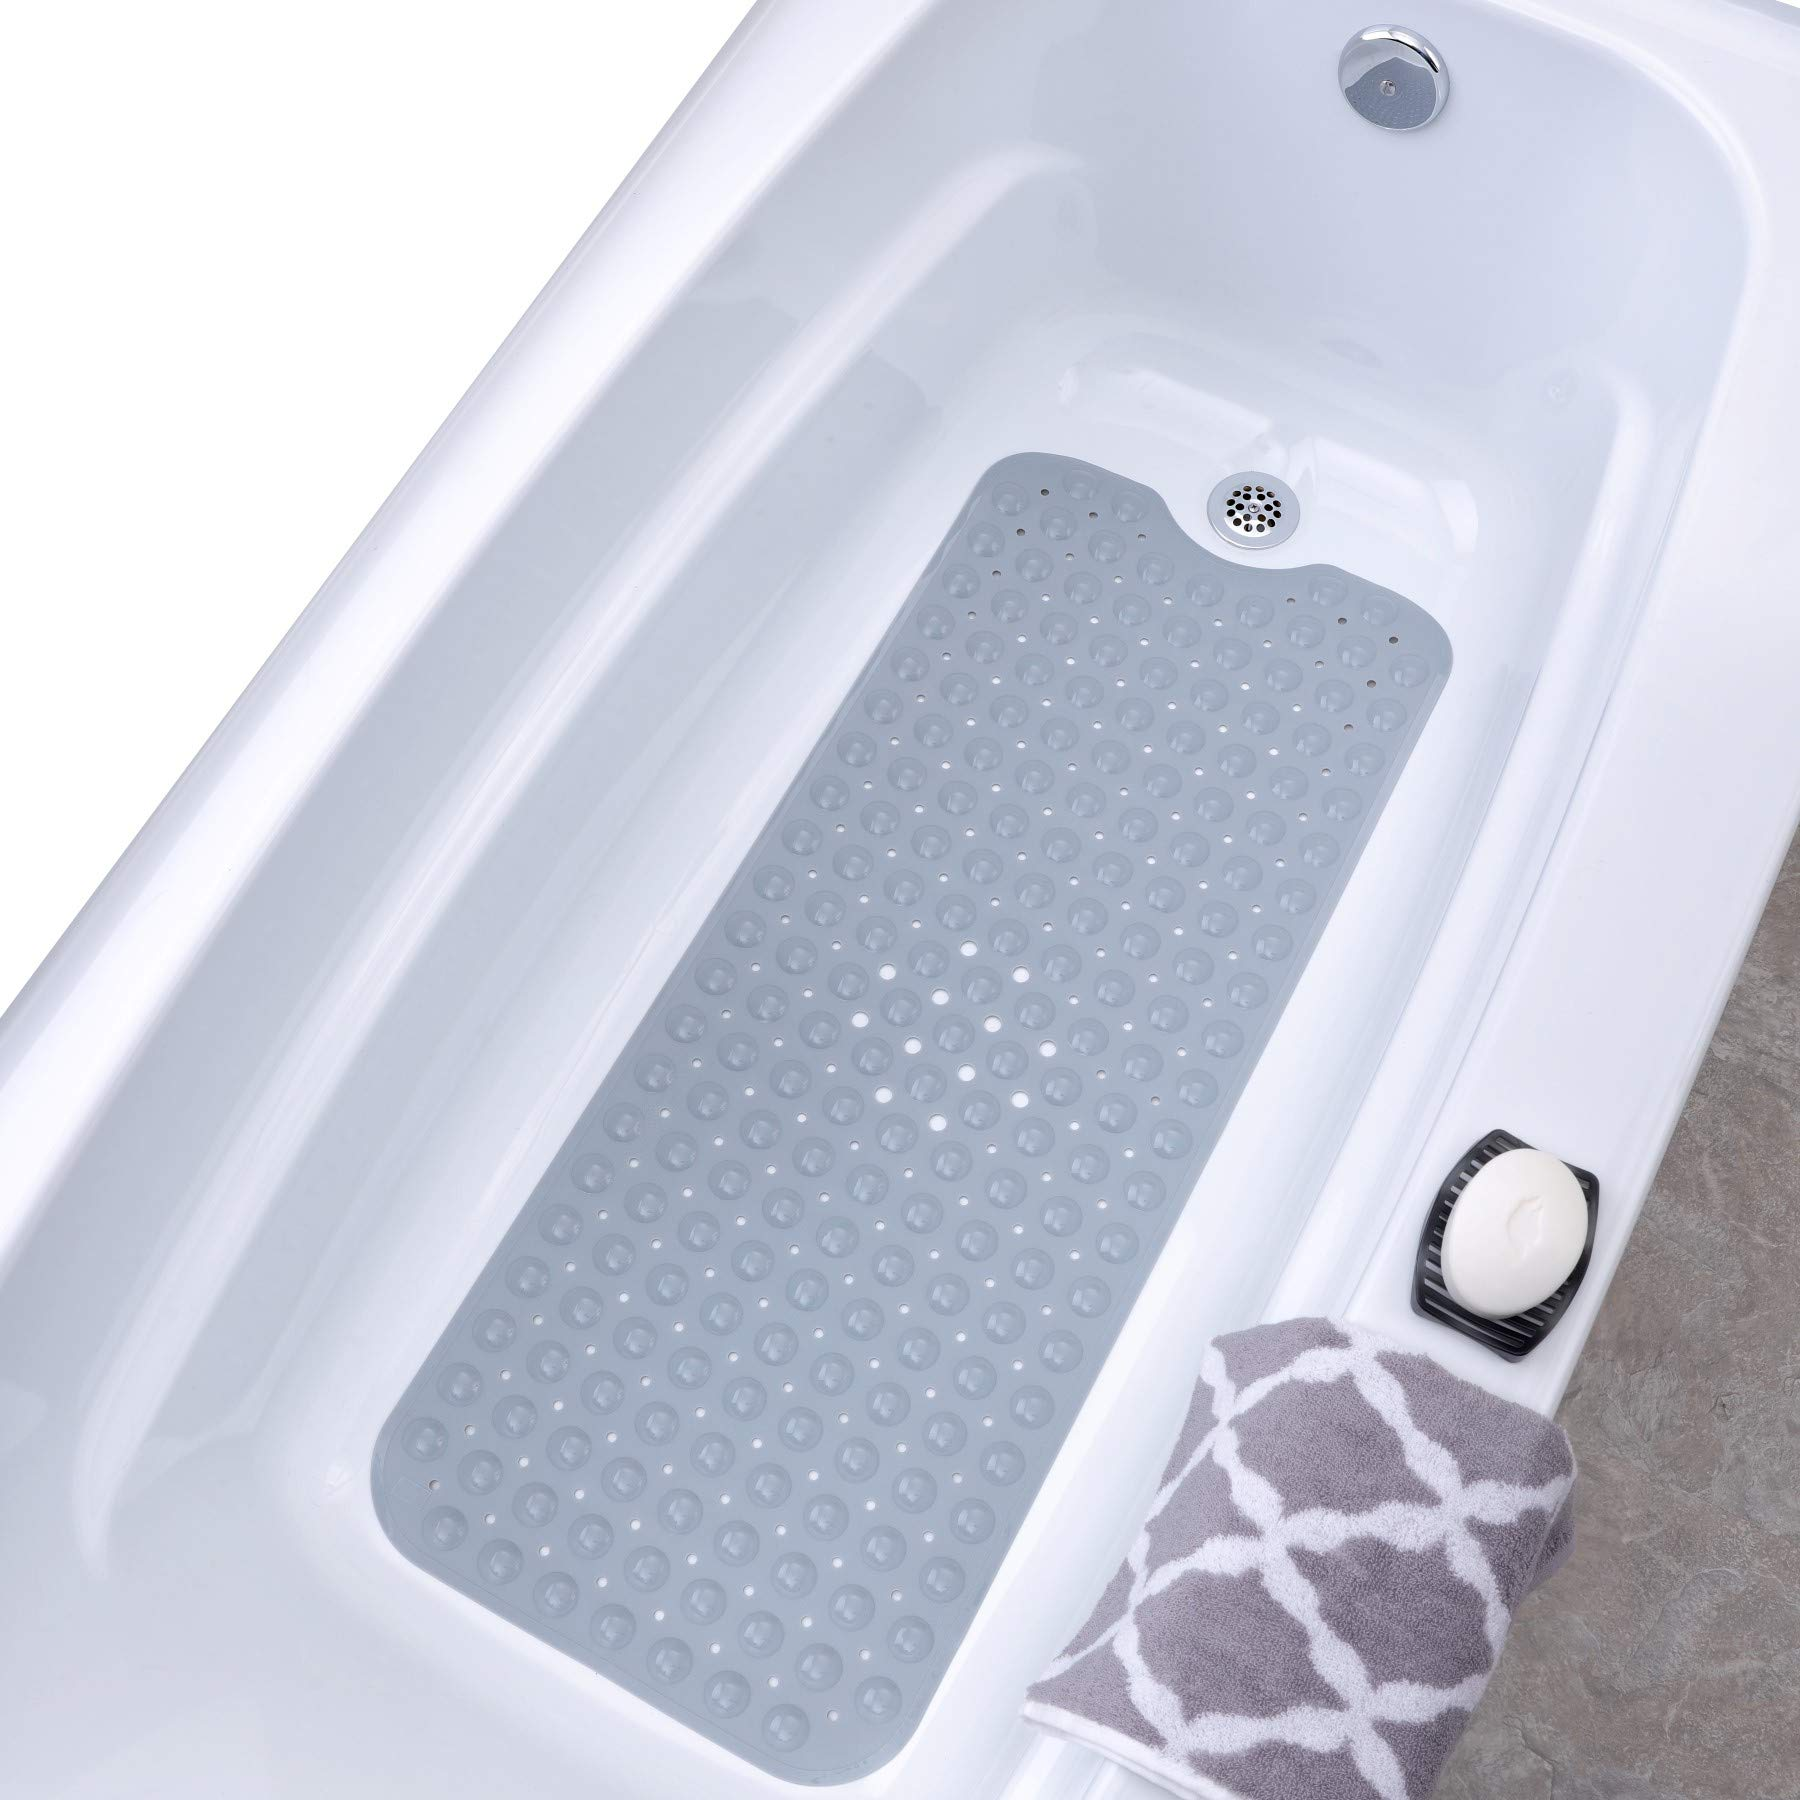 SlipX Solutions Gray Extra Long Bath Mat Adds Non-Slip Traction to Tubs & Showers - 30% Longer Than Standard Mats! (200 Suction Cups, 39'' Long Bathtub Mat)